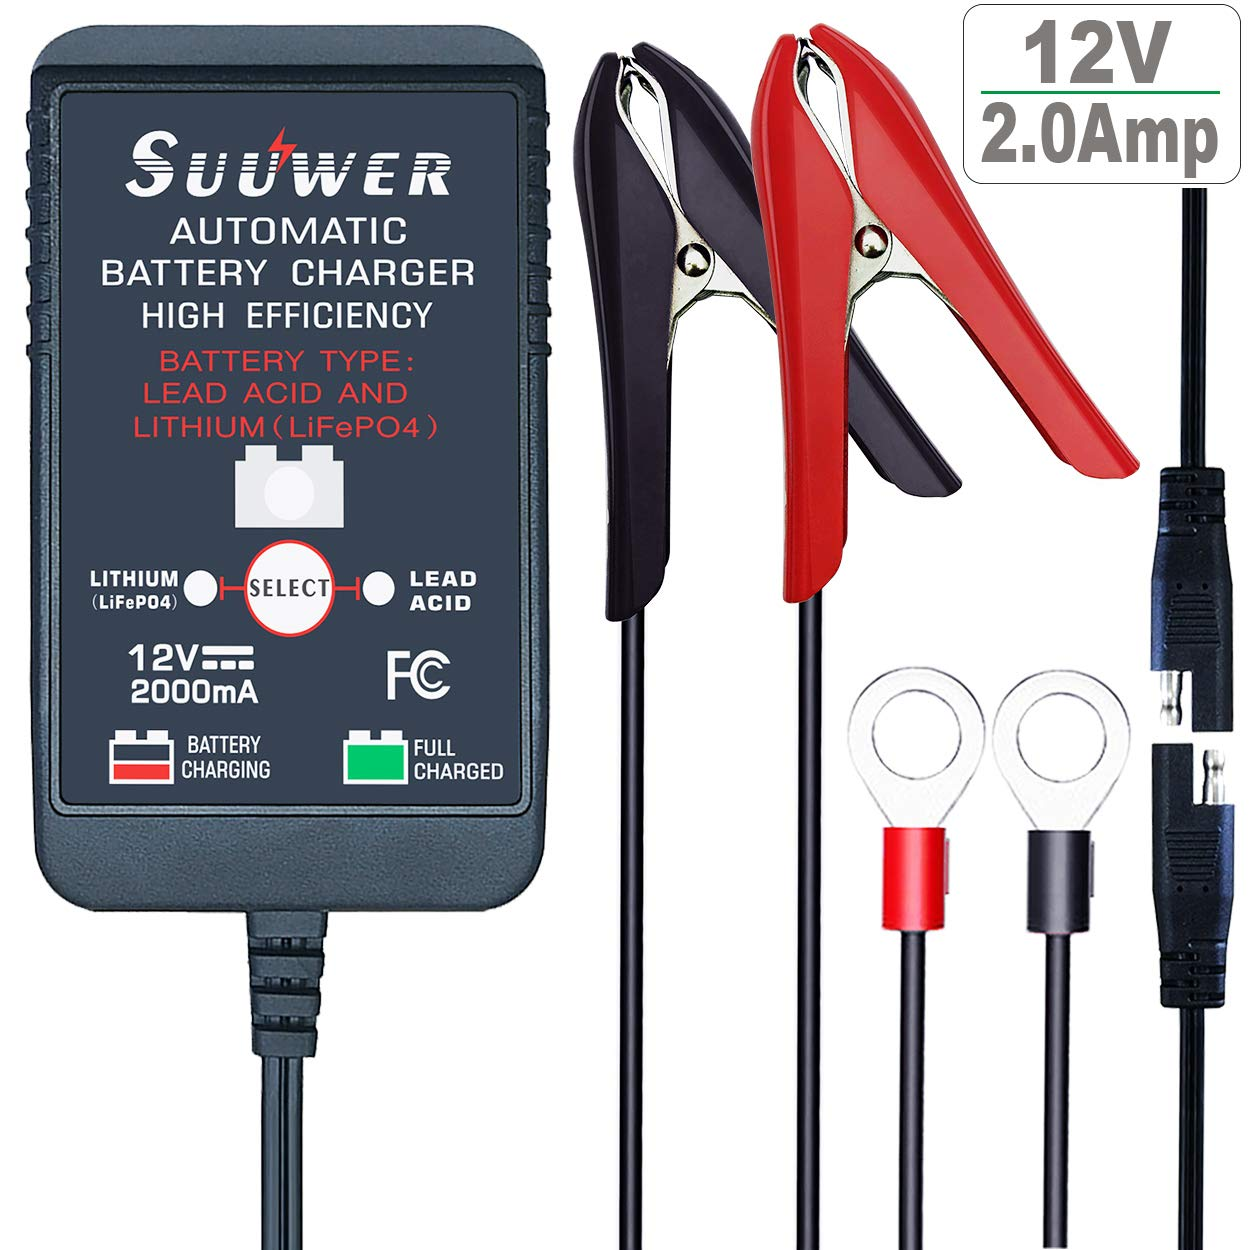 Suuwer SE Automatic Trickle Battery Charger 12V 2A Lead Acid or Lithium (LifePO4) Smart Battery Charger Maintainer.